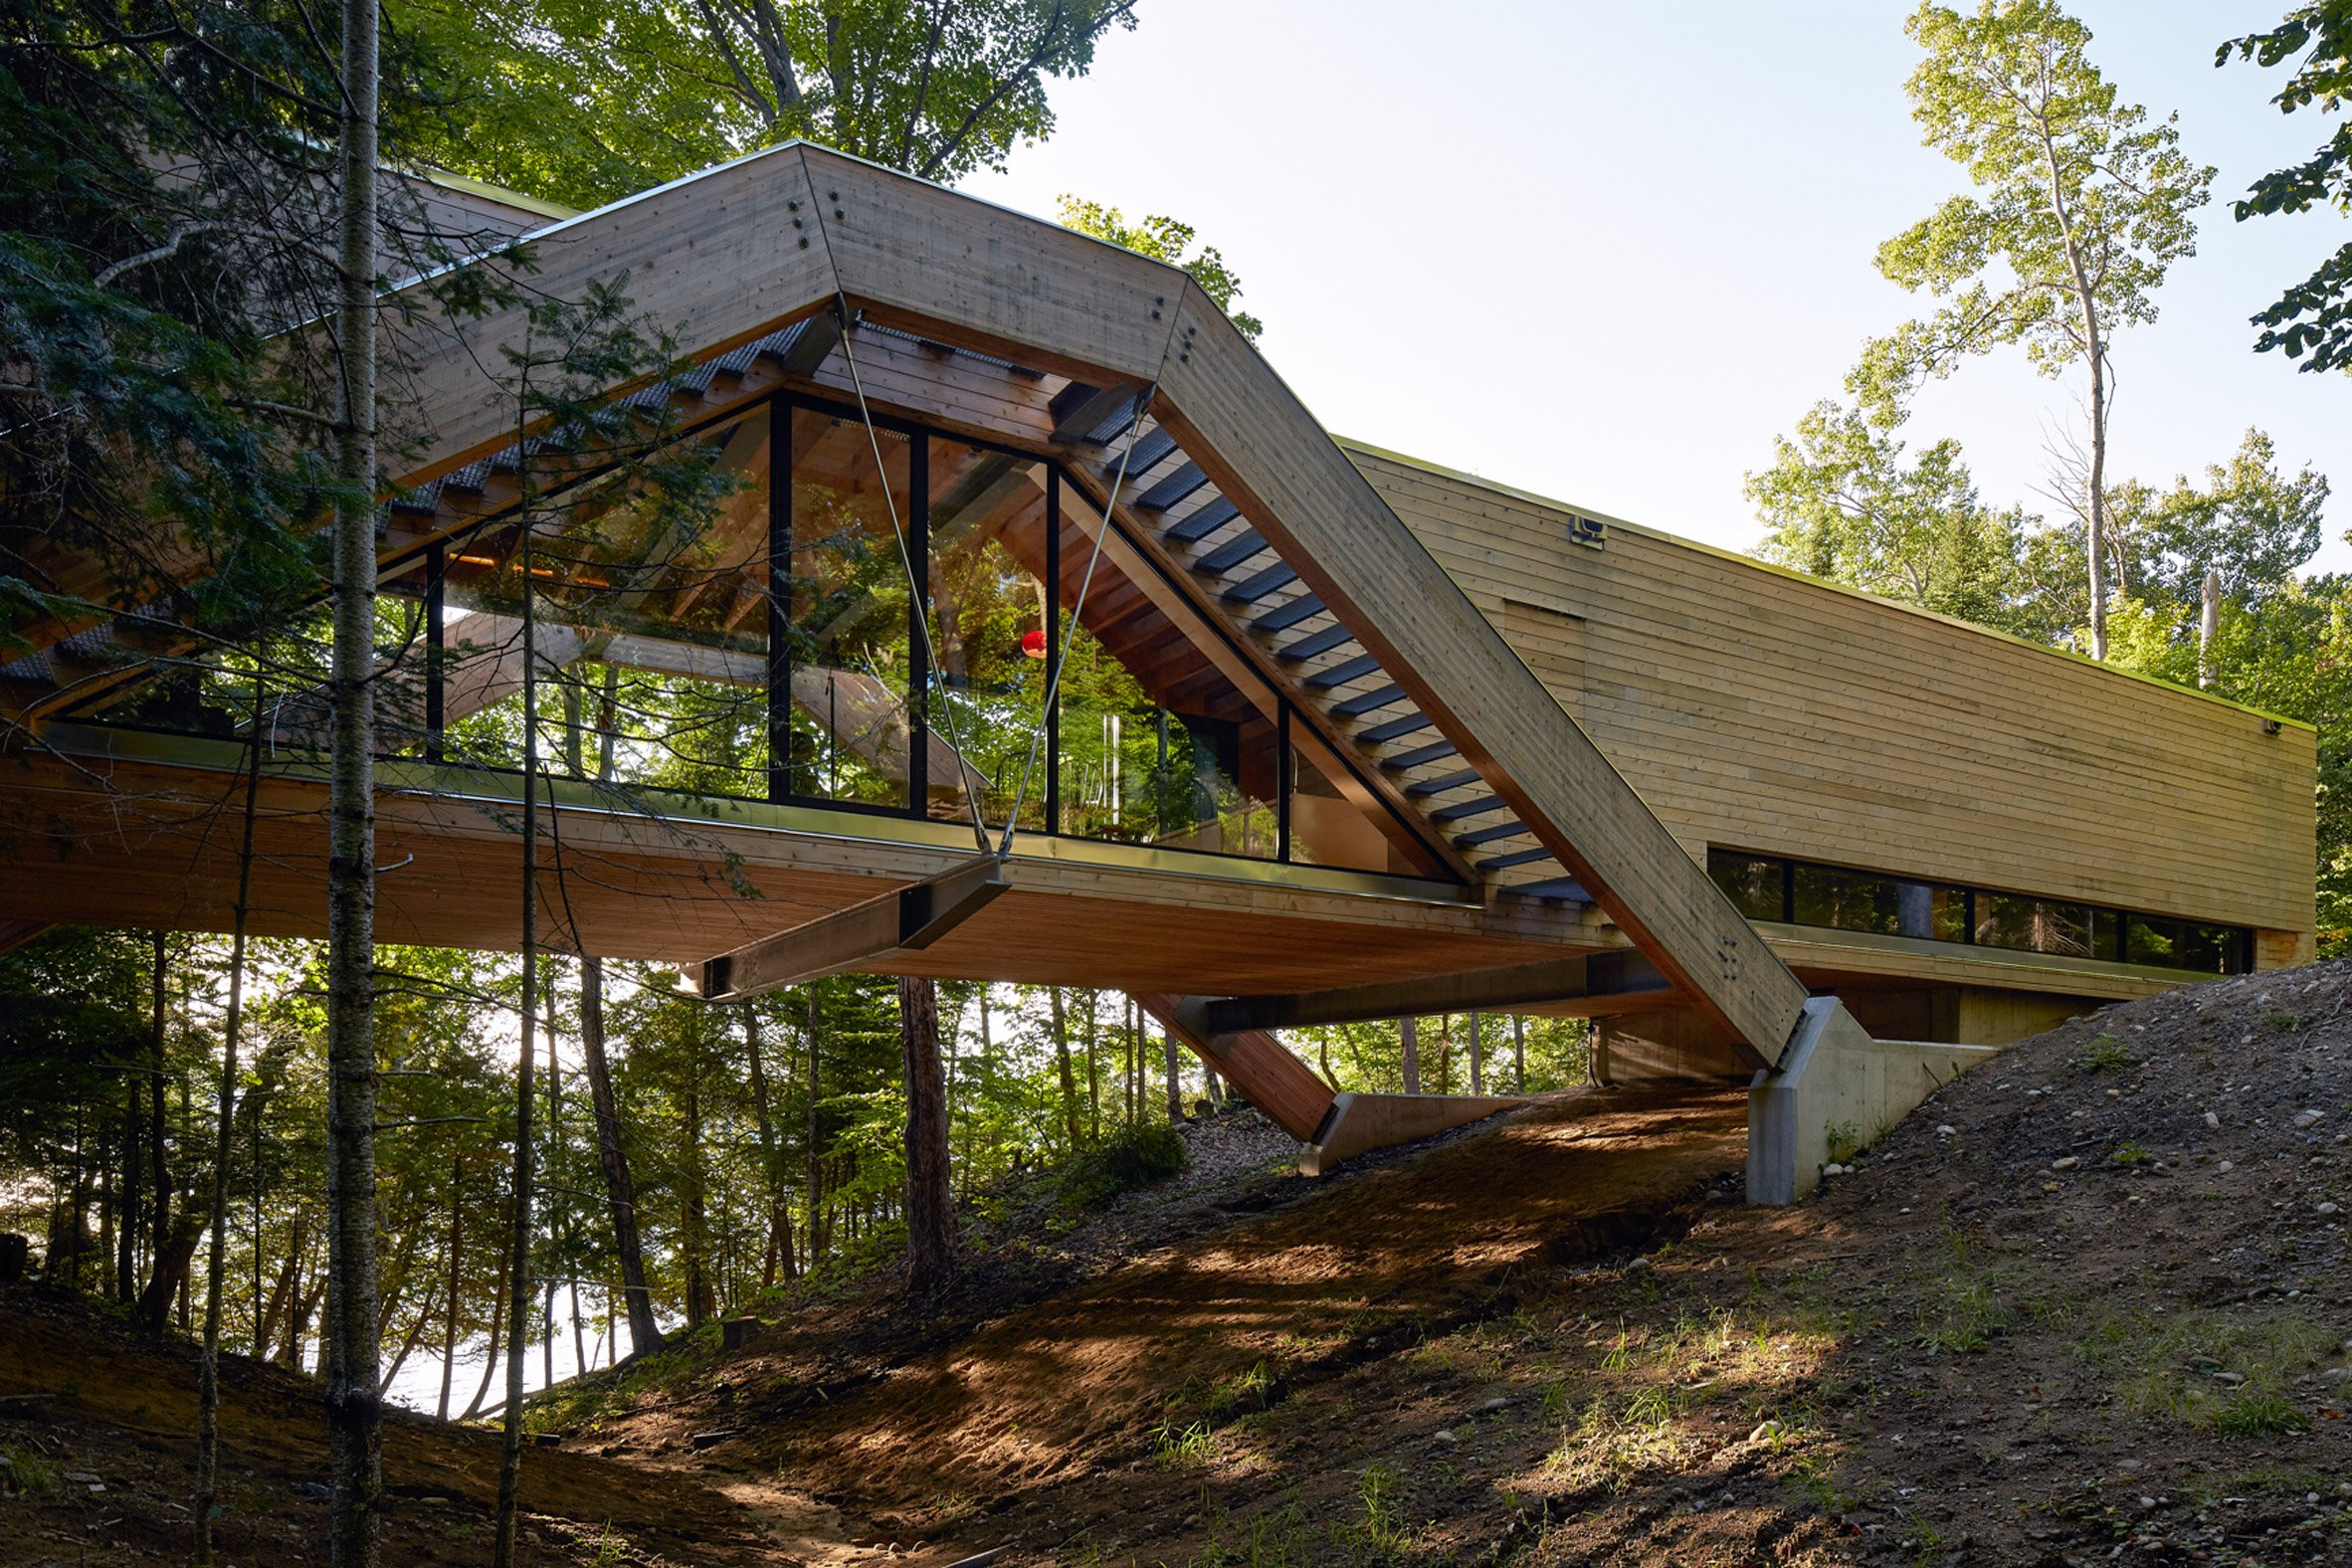 Bridgehouse by Llama Urban Design spans over Canadian forest floor